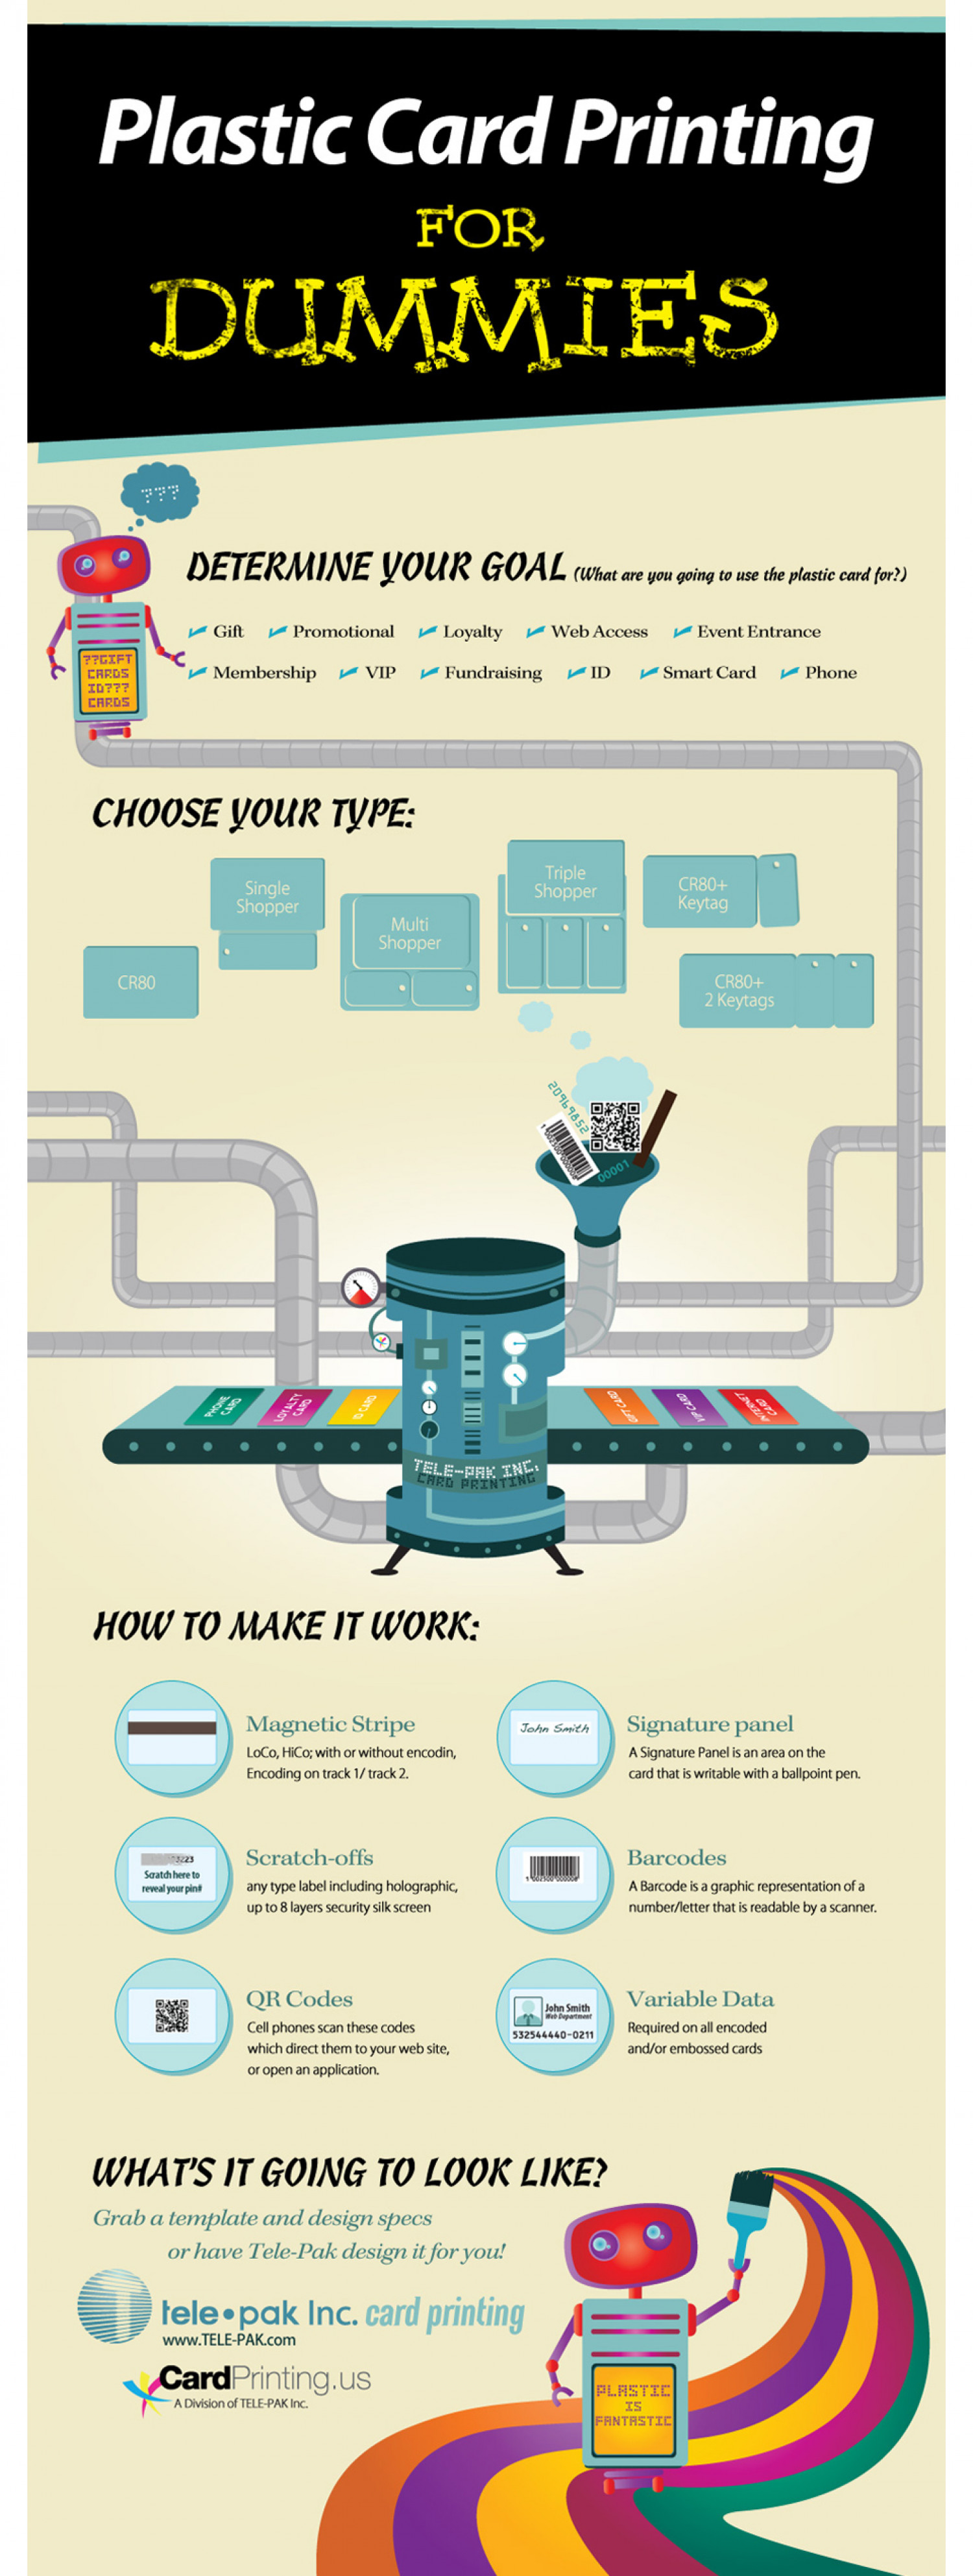 Plastic Card Printing for Dummies Infographic